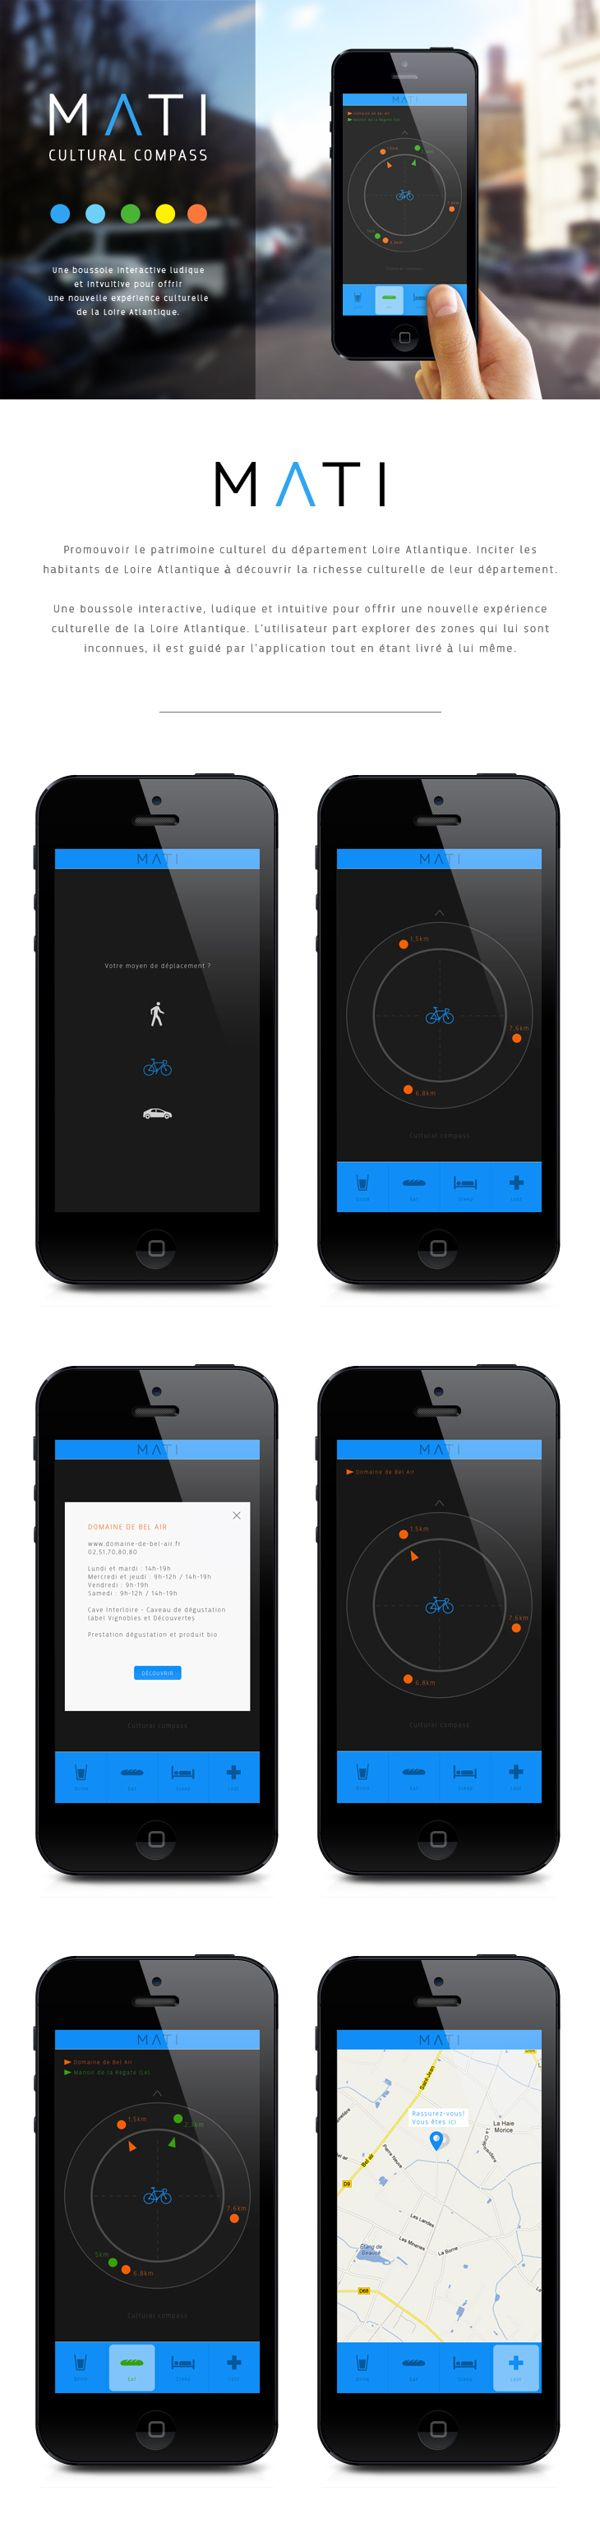 MATI - Interactive compass on App Design Served